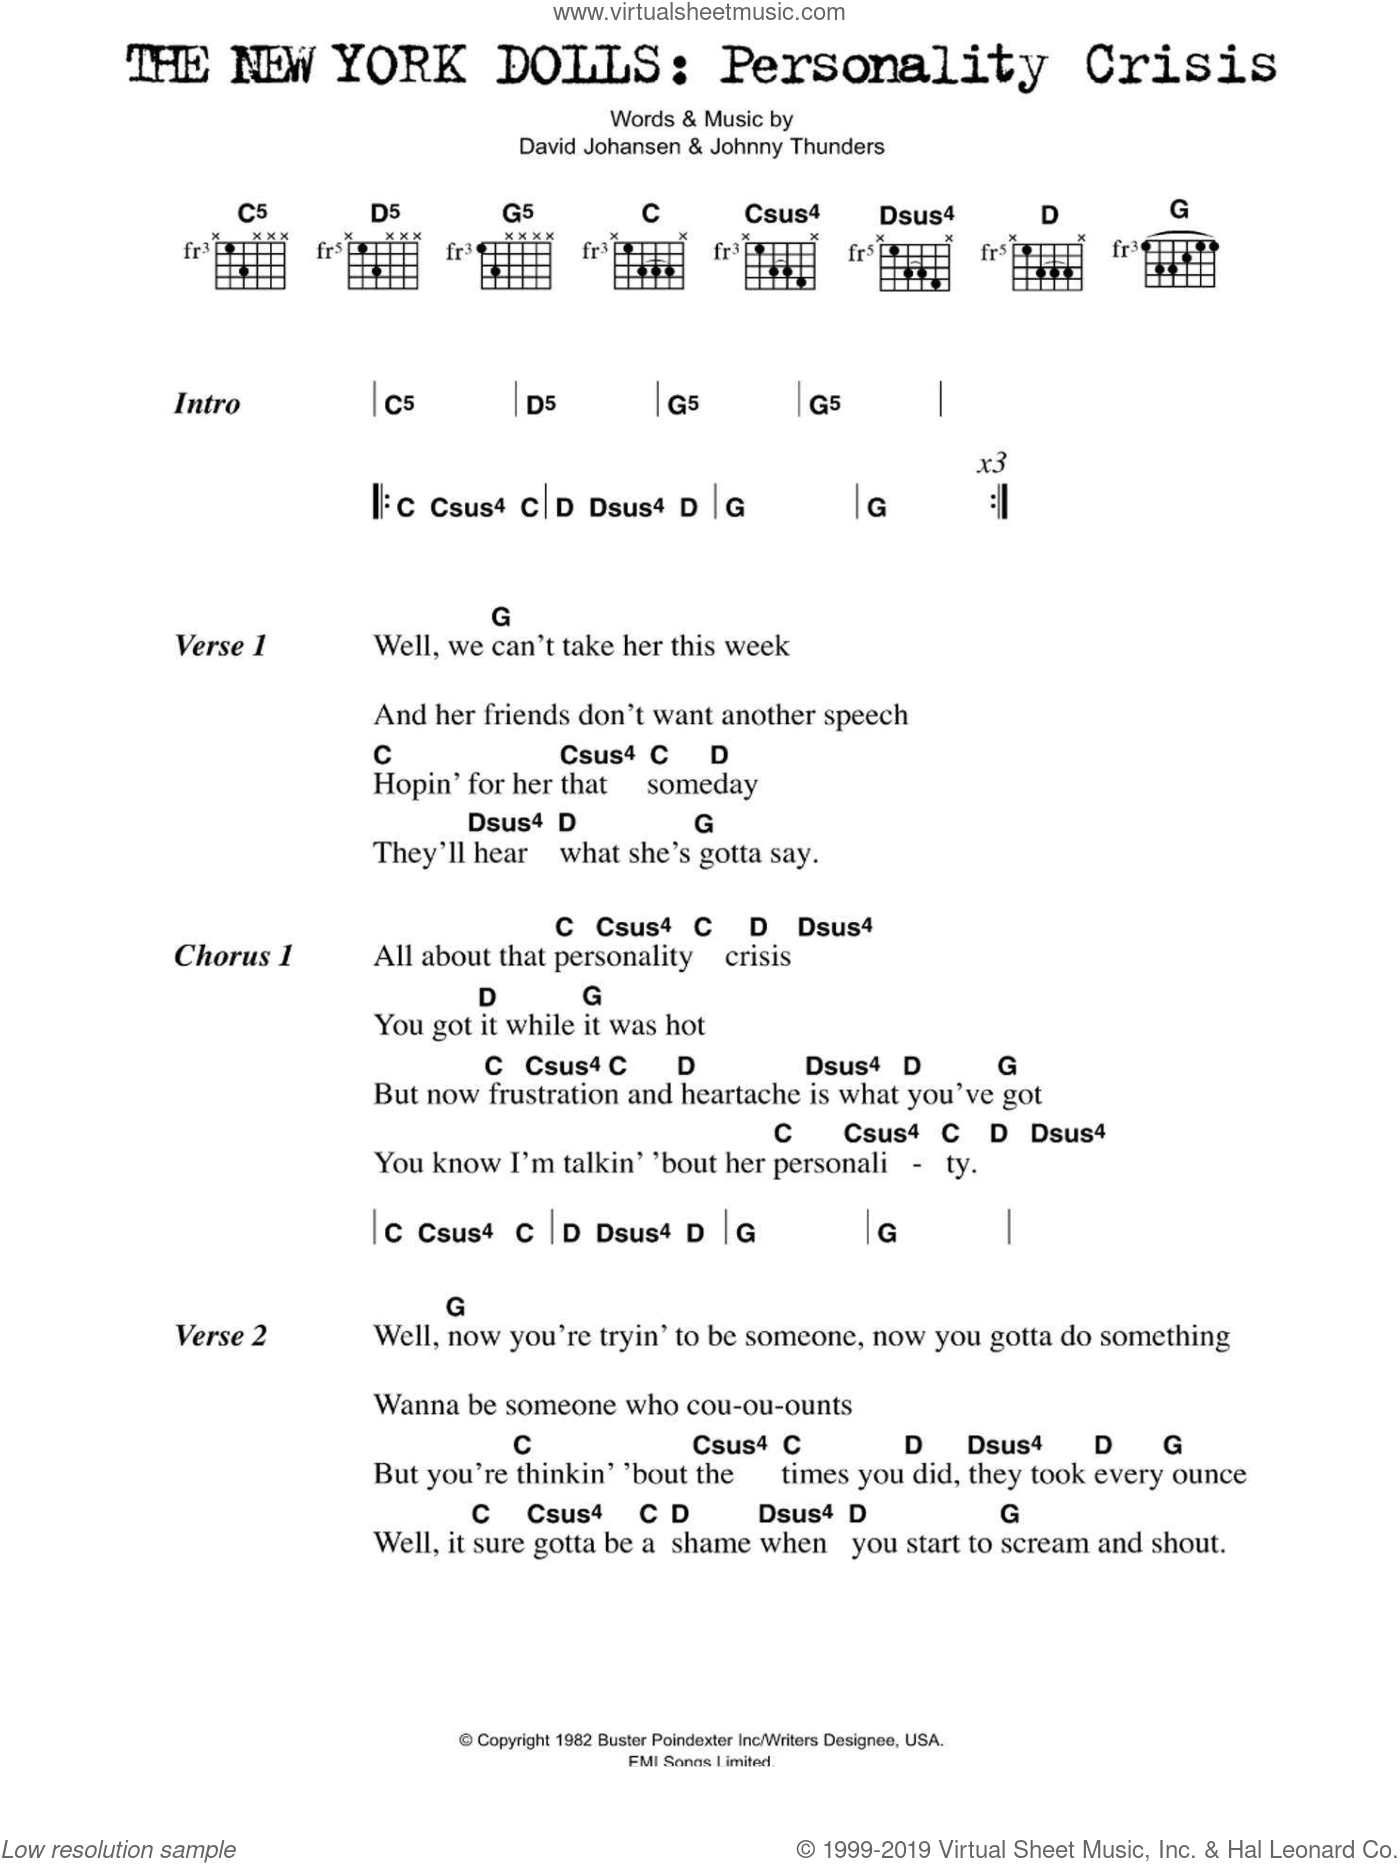 Personality Crisis sheet music for guitar (chords) by David Johansen